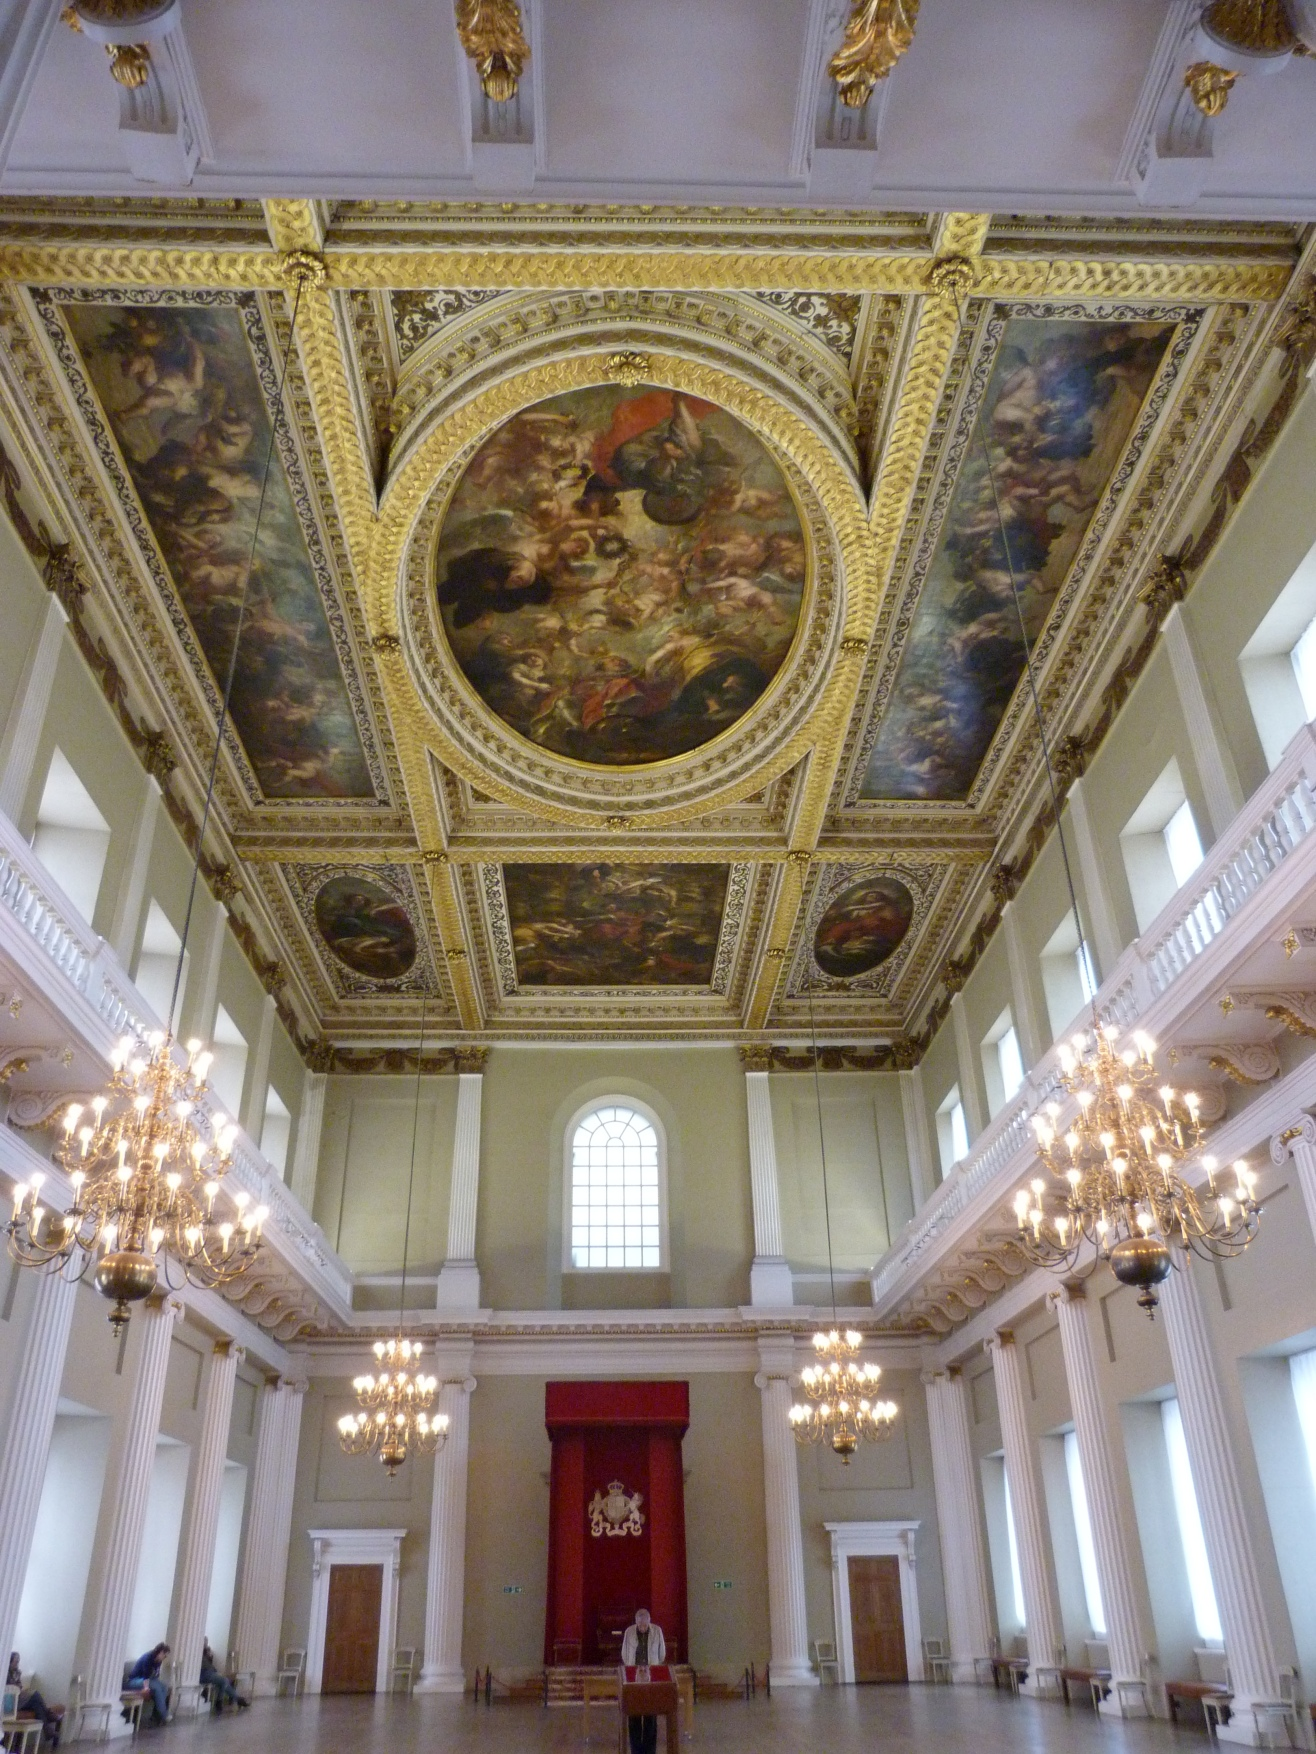 Ceiling, Banqueting House, Whitehall - Copy.JPG